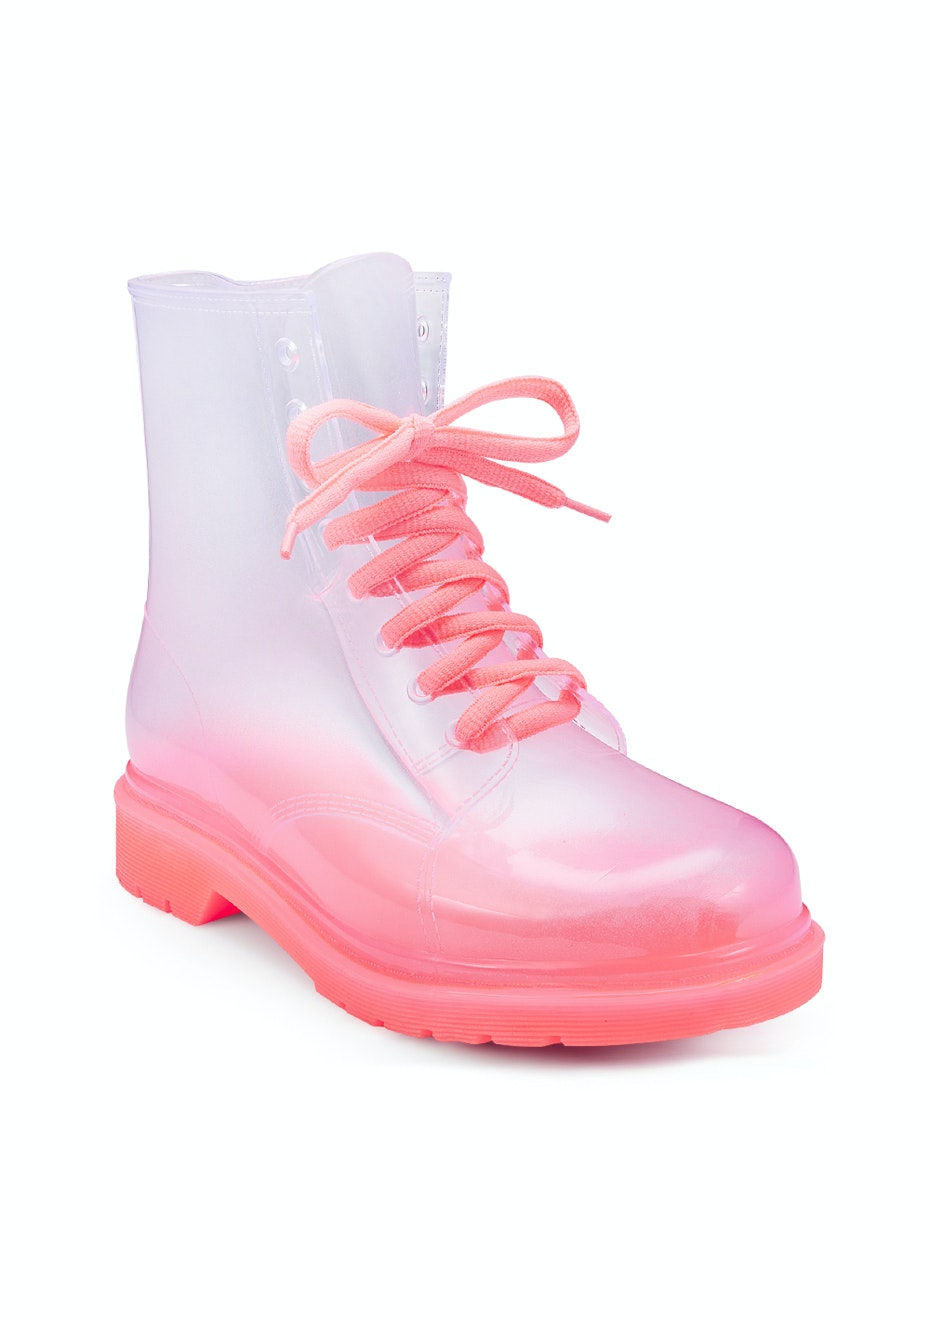 Pink/Clear Combat Boot - Pink/Clear